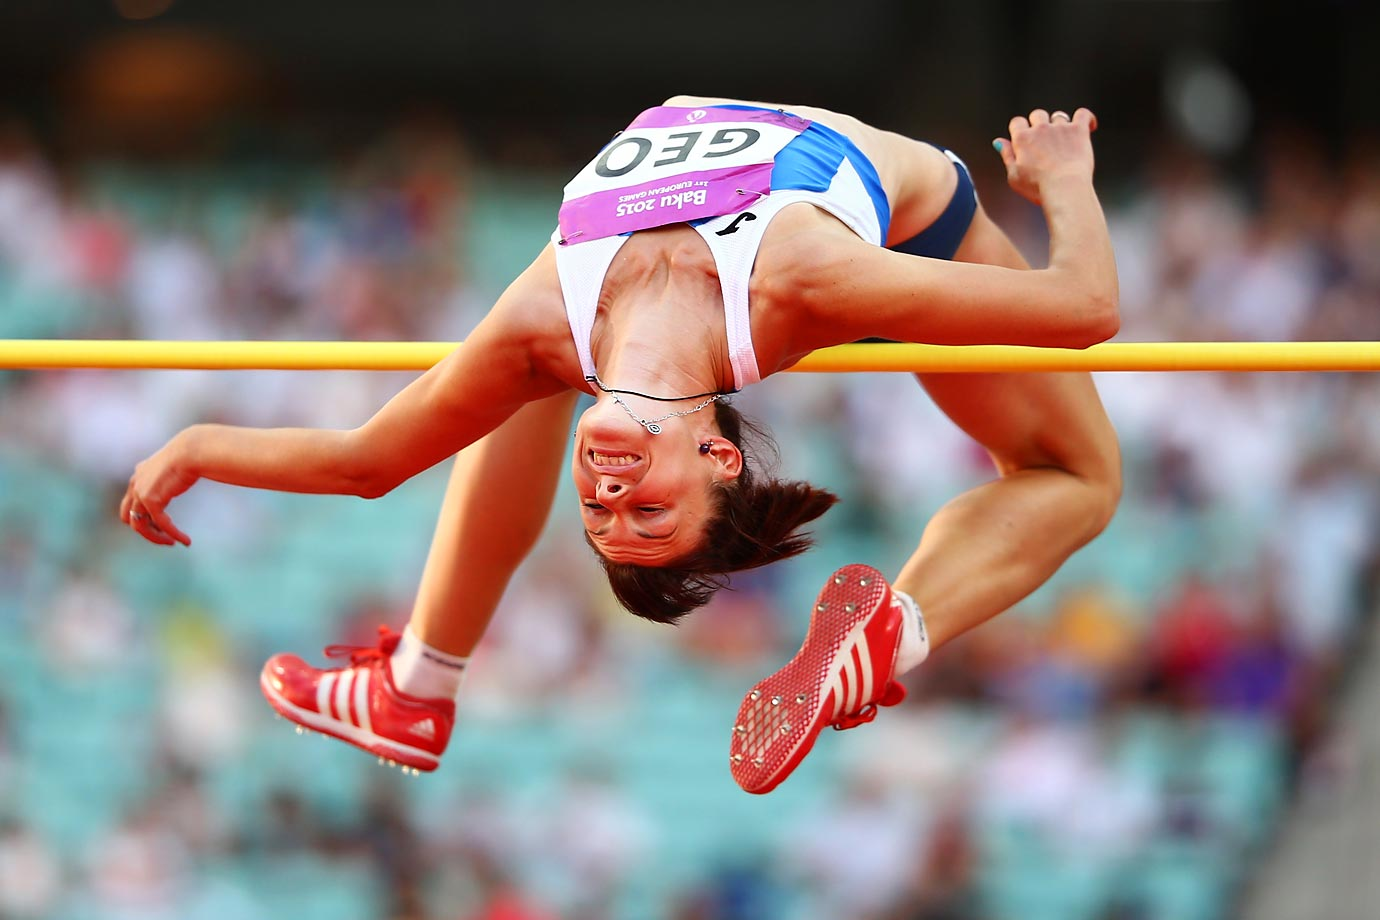 Valentyna Liashenko of Georgia competes in the high jump during the Baku 2015 European Games.